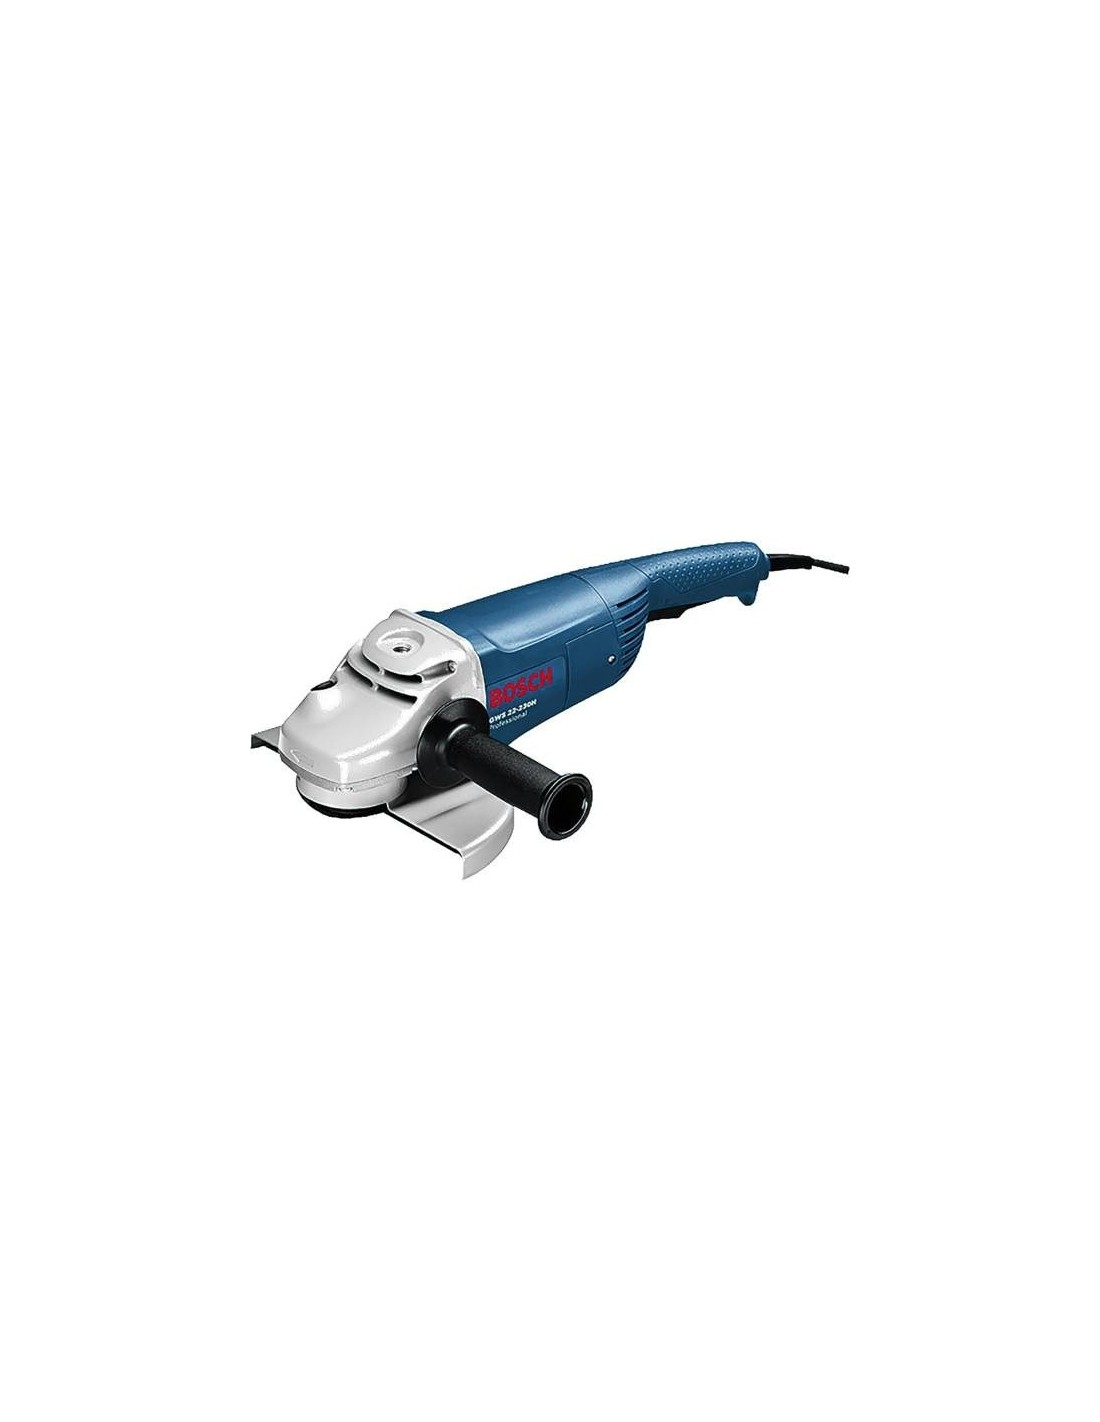 Meuleuse d 39 angle gws 22 230 h bosch professional - Meuleuse d angle ...